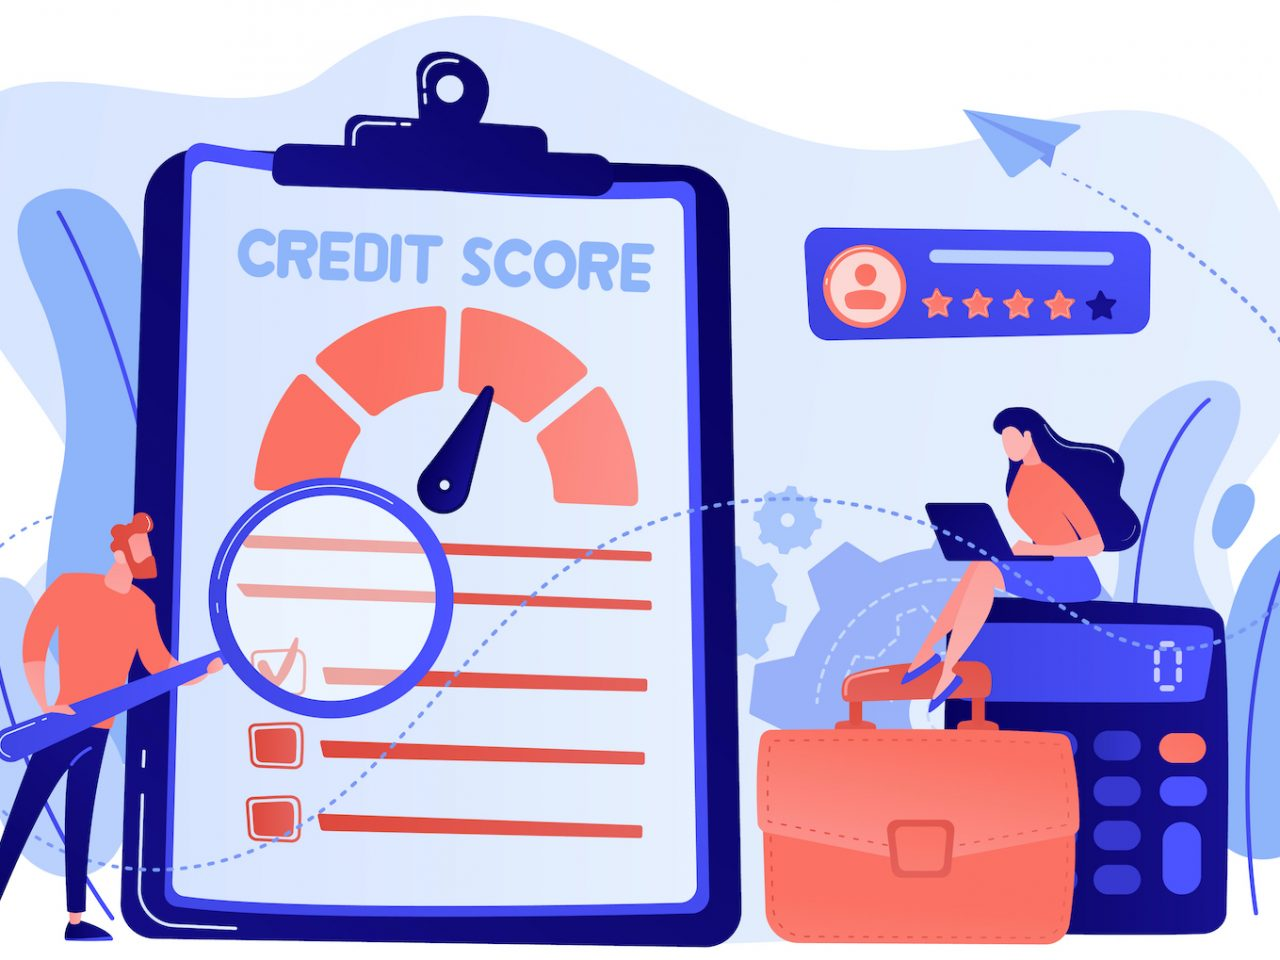 Tiny people analysts evaluating ability of prospective debtor to pay the debt. Credit rating, credit risk control, credit rating agency concept. Pink coral blue vector isolated illustration